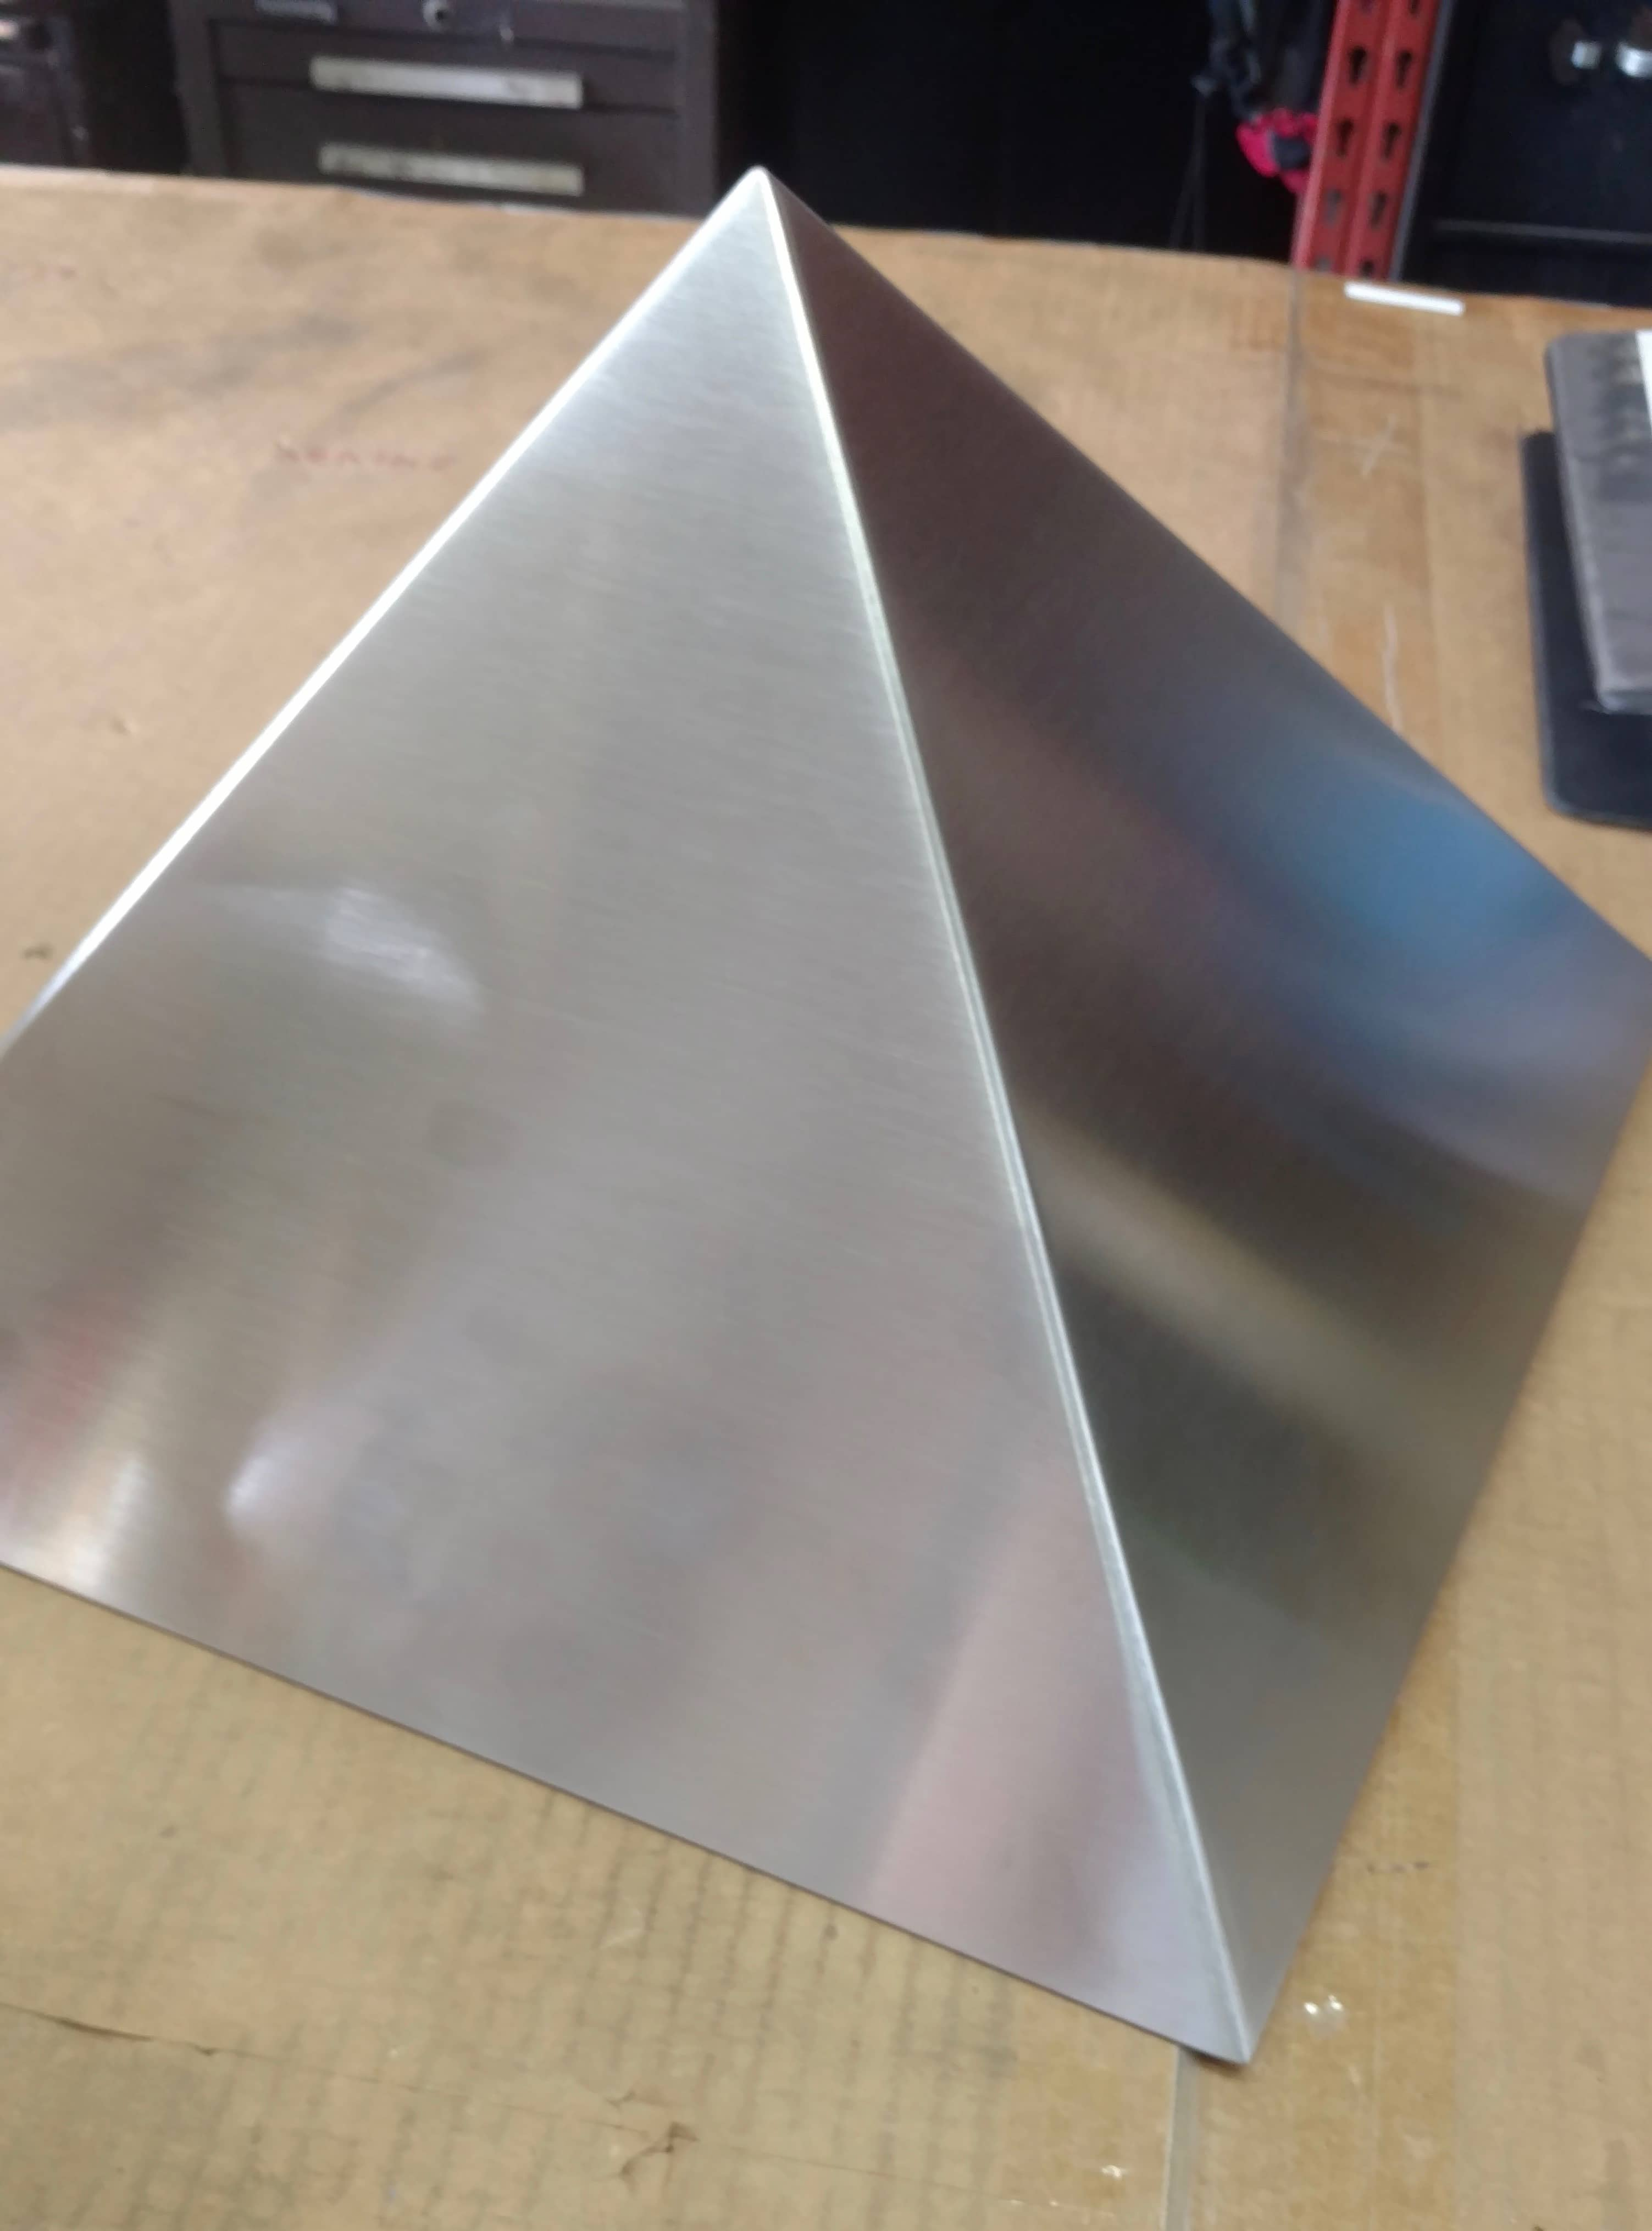 Awesome Stainless Steel Pyramid Do It Yourself Project